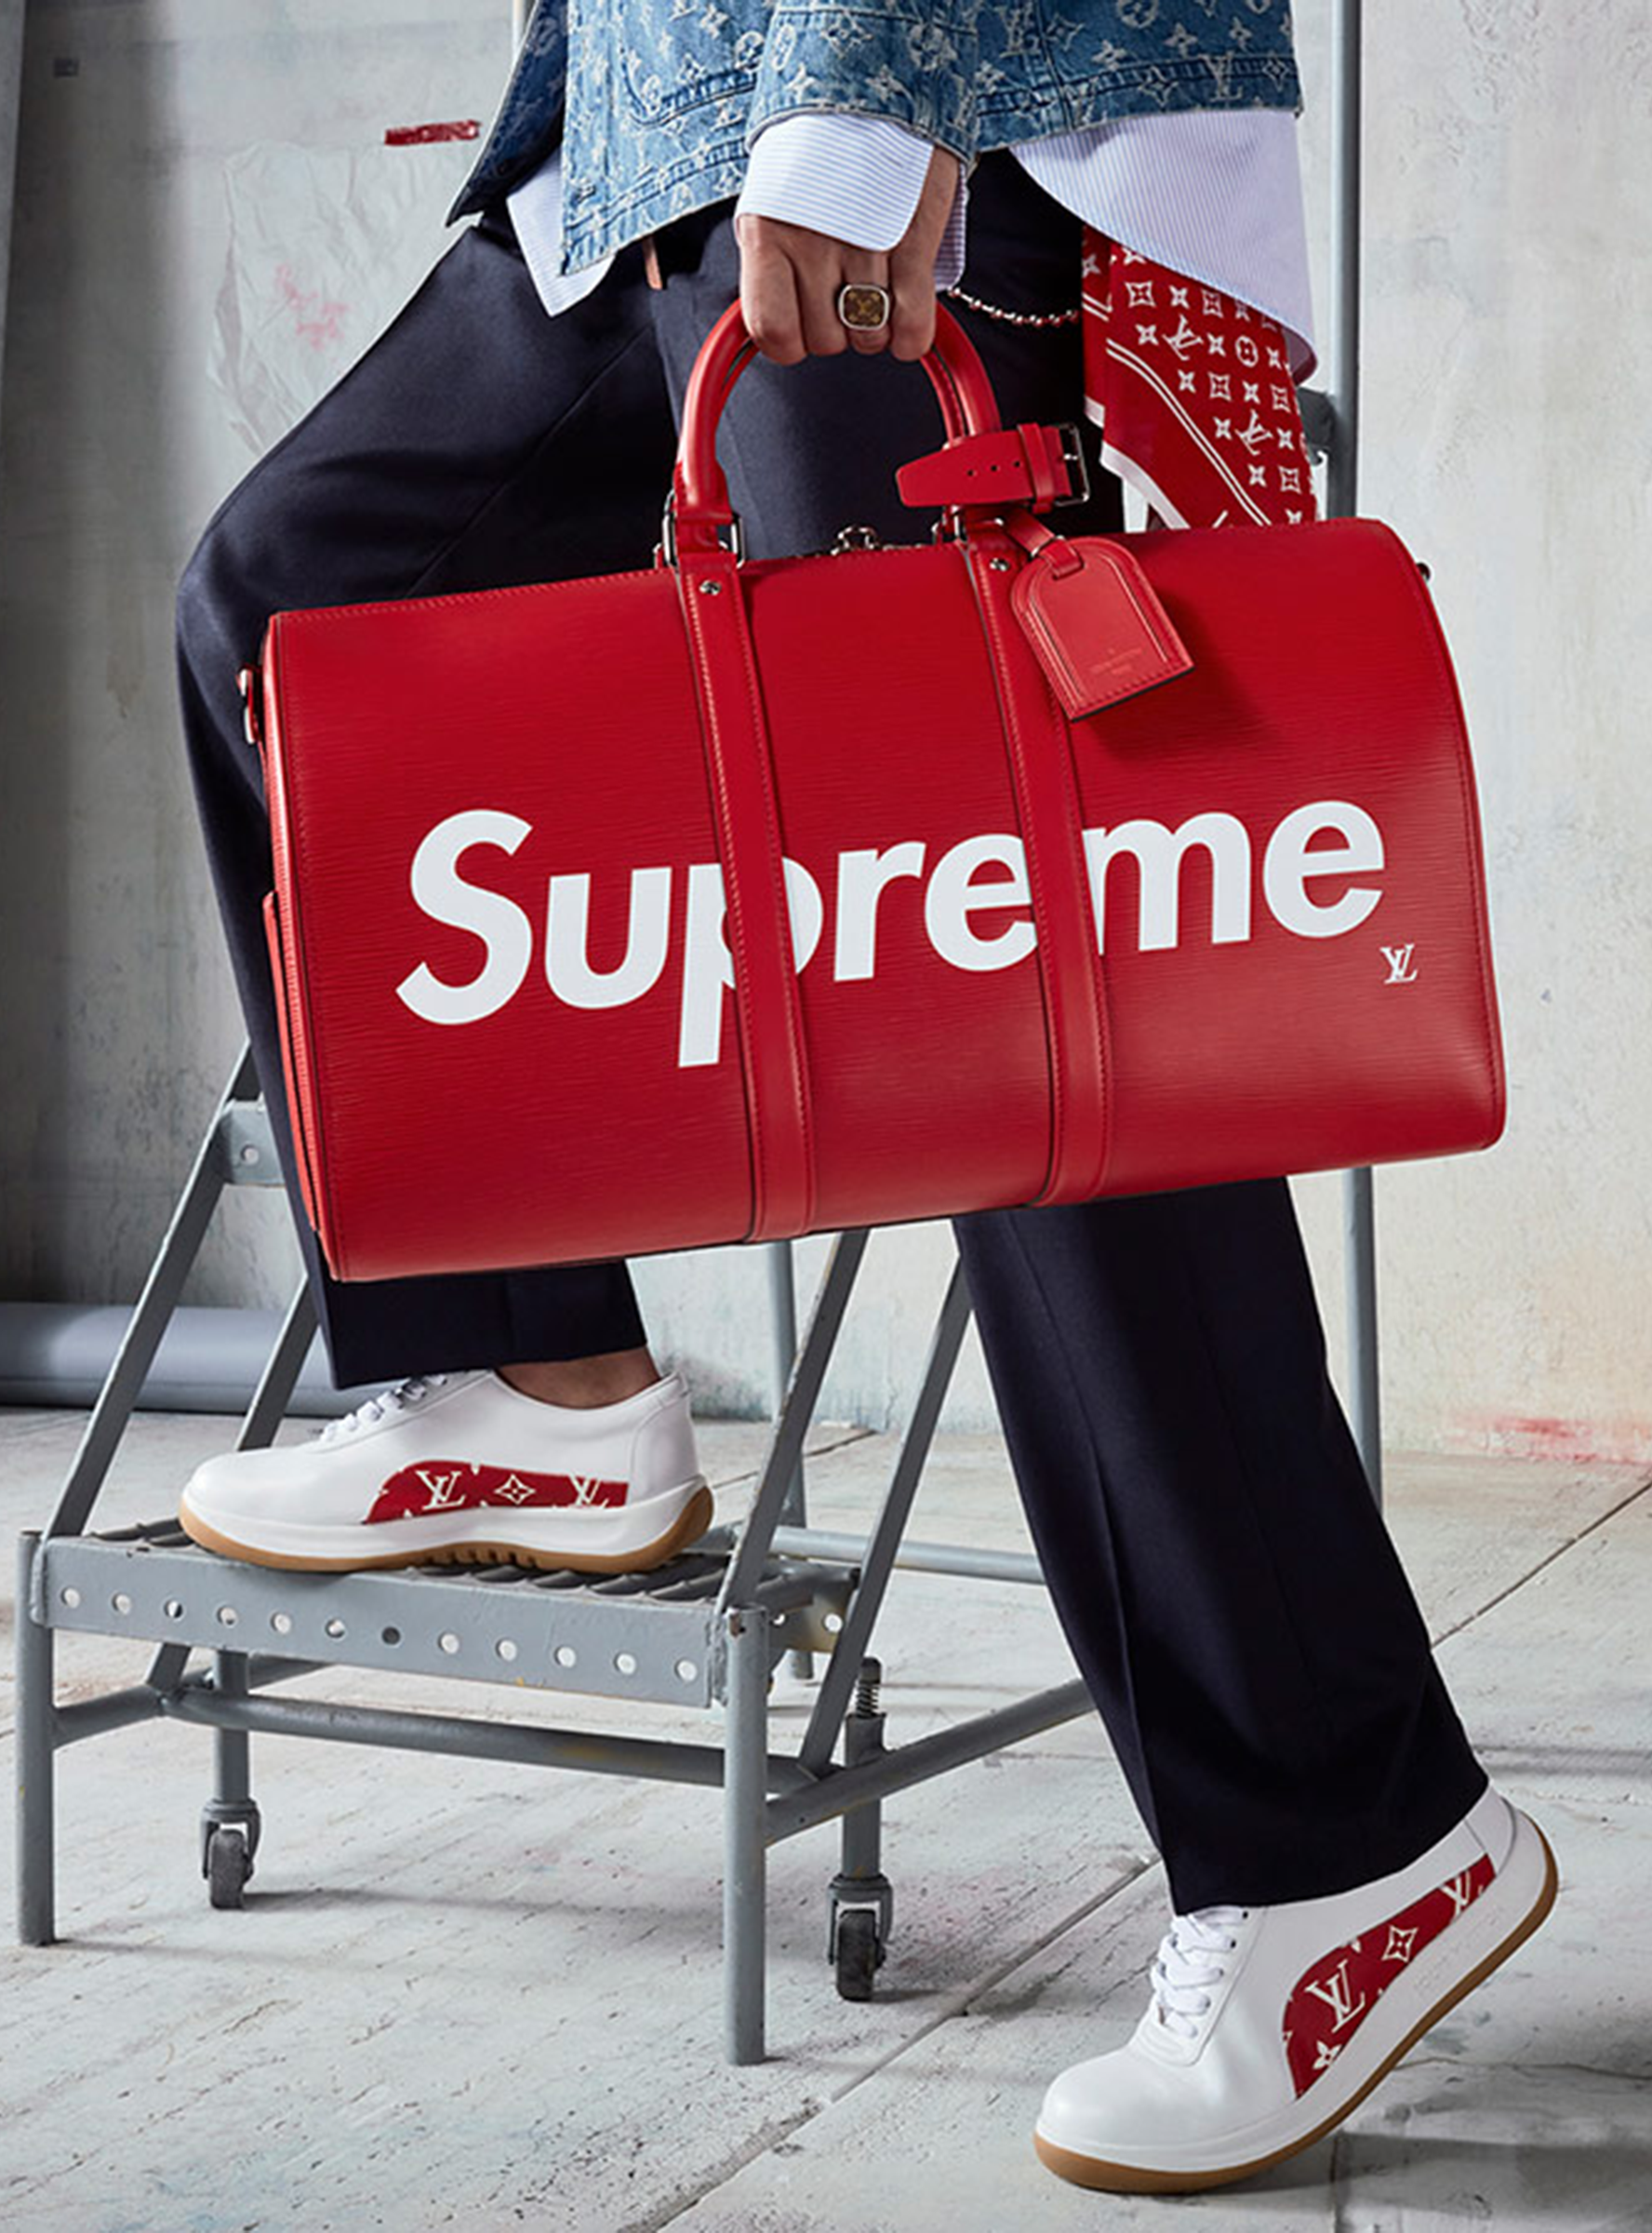 Supreme louis vuitton ebay resale value collaboration gumiabroncs Image collections